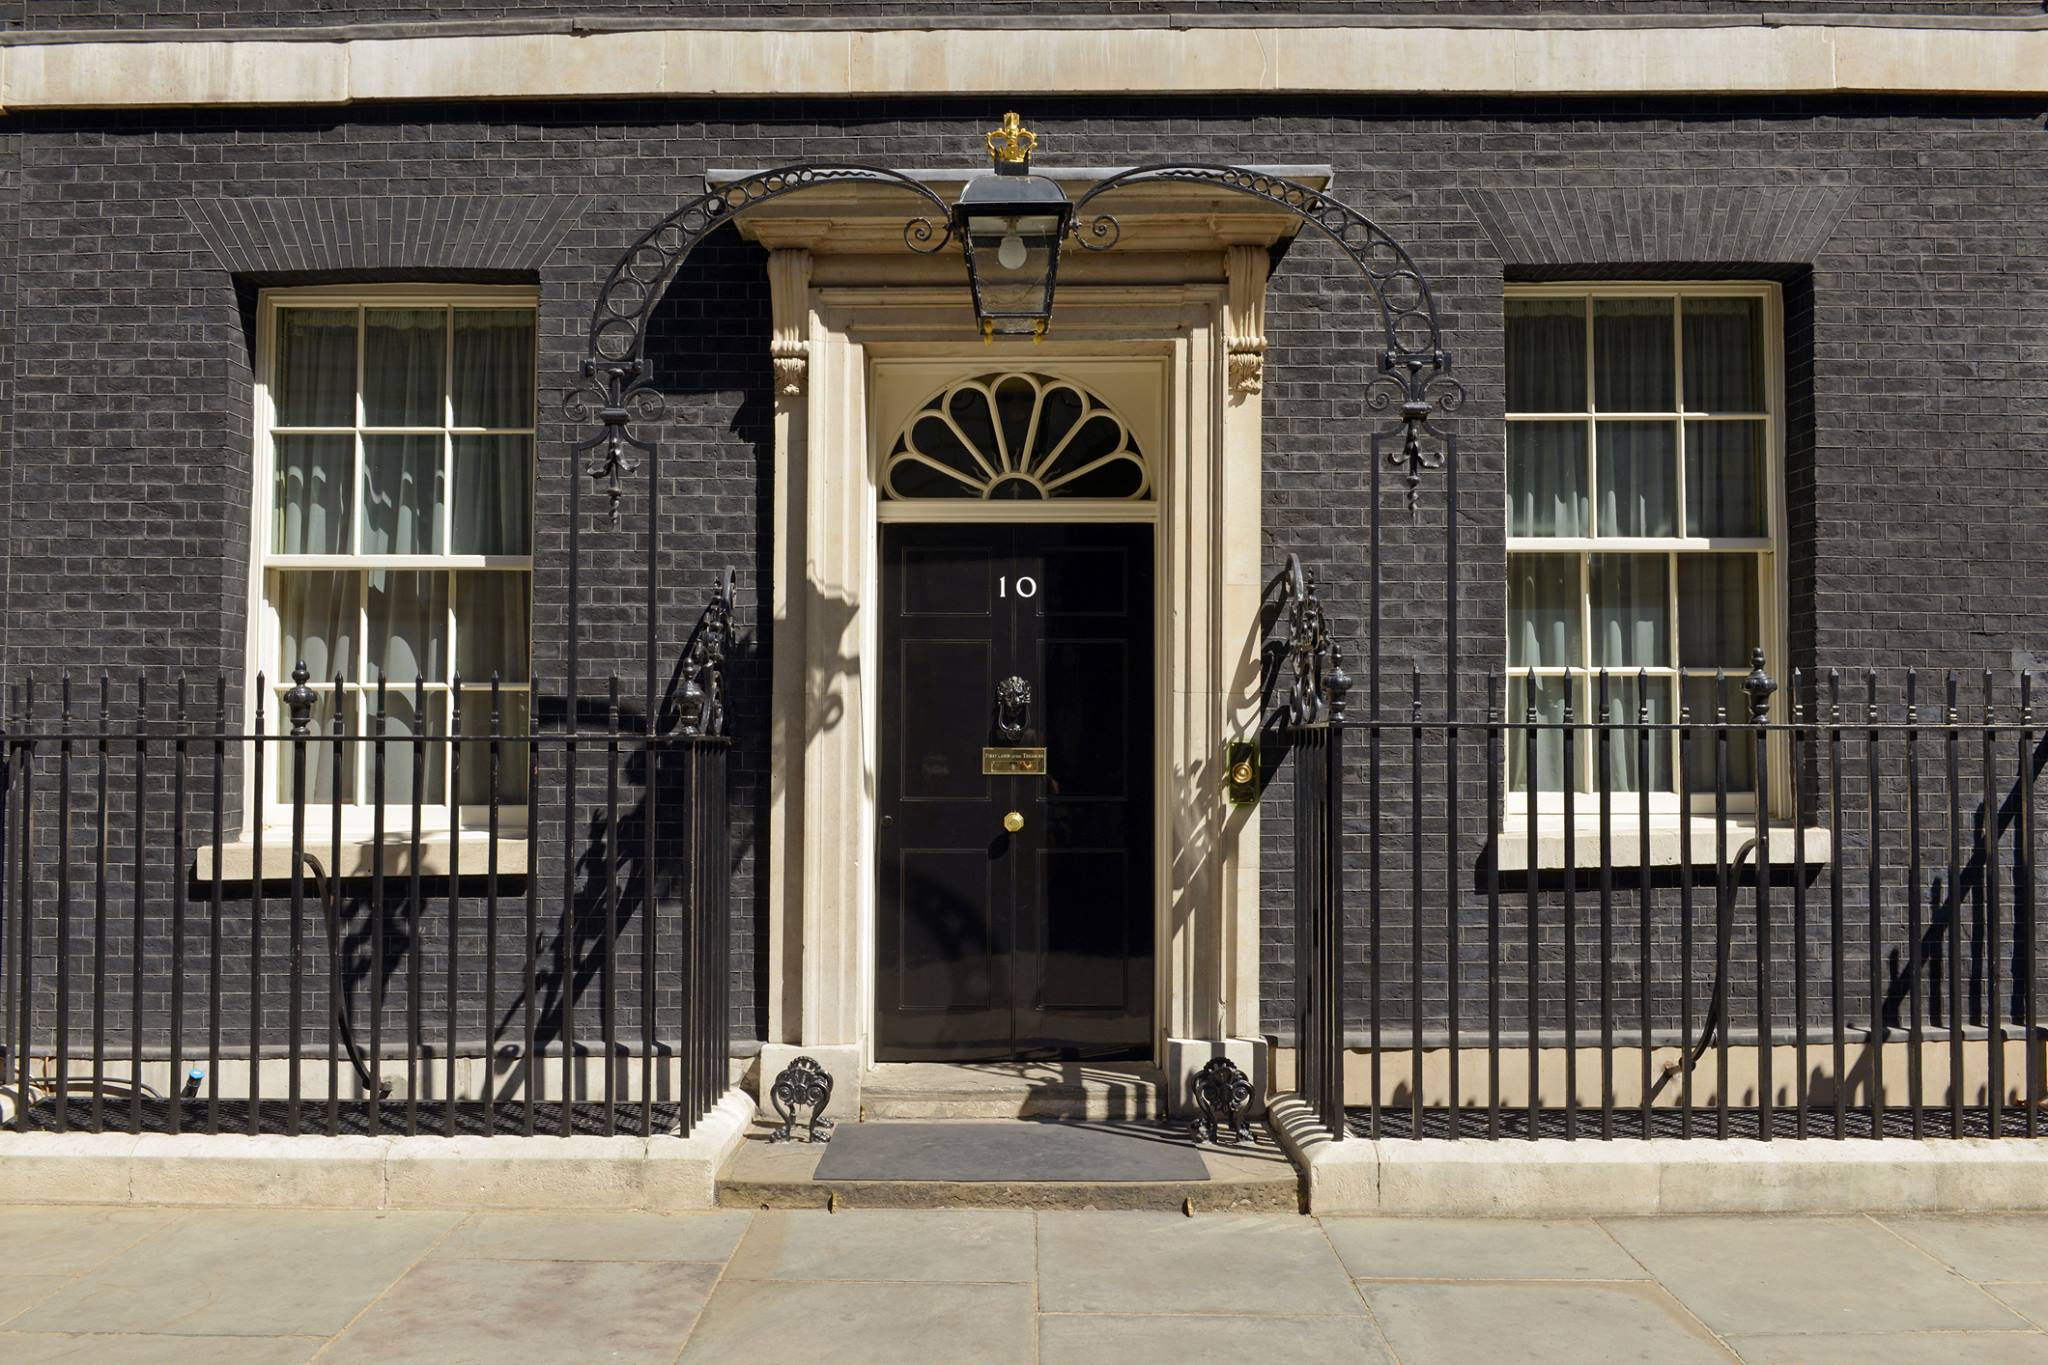 A visit to 10 Downing Street